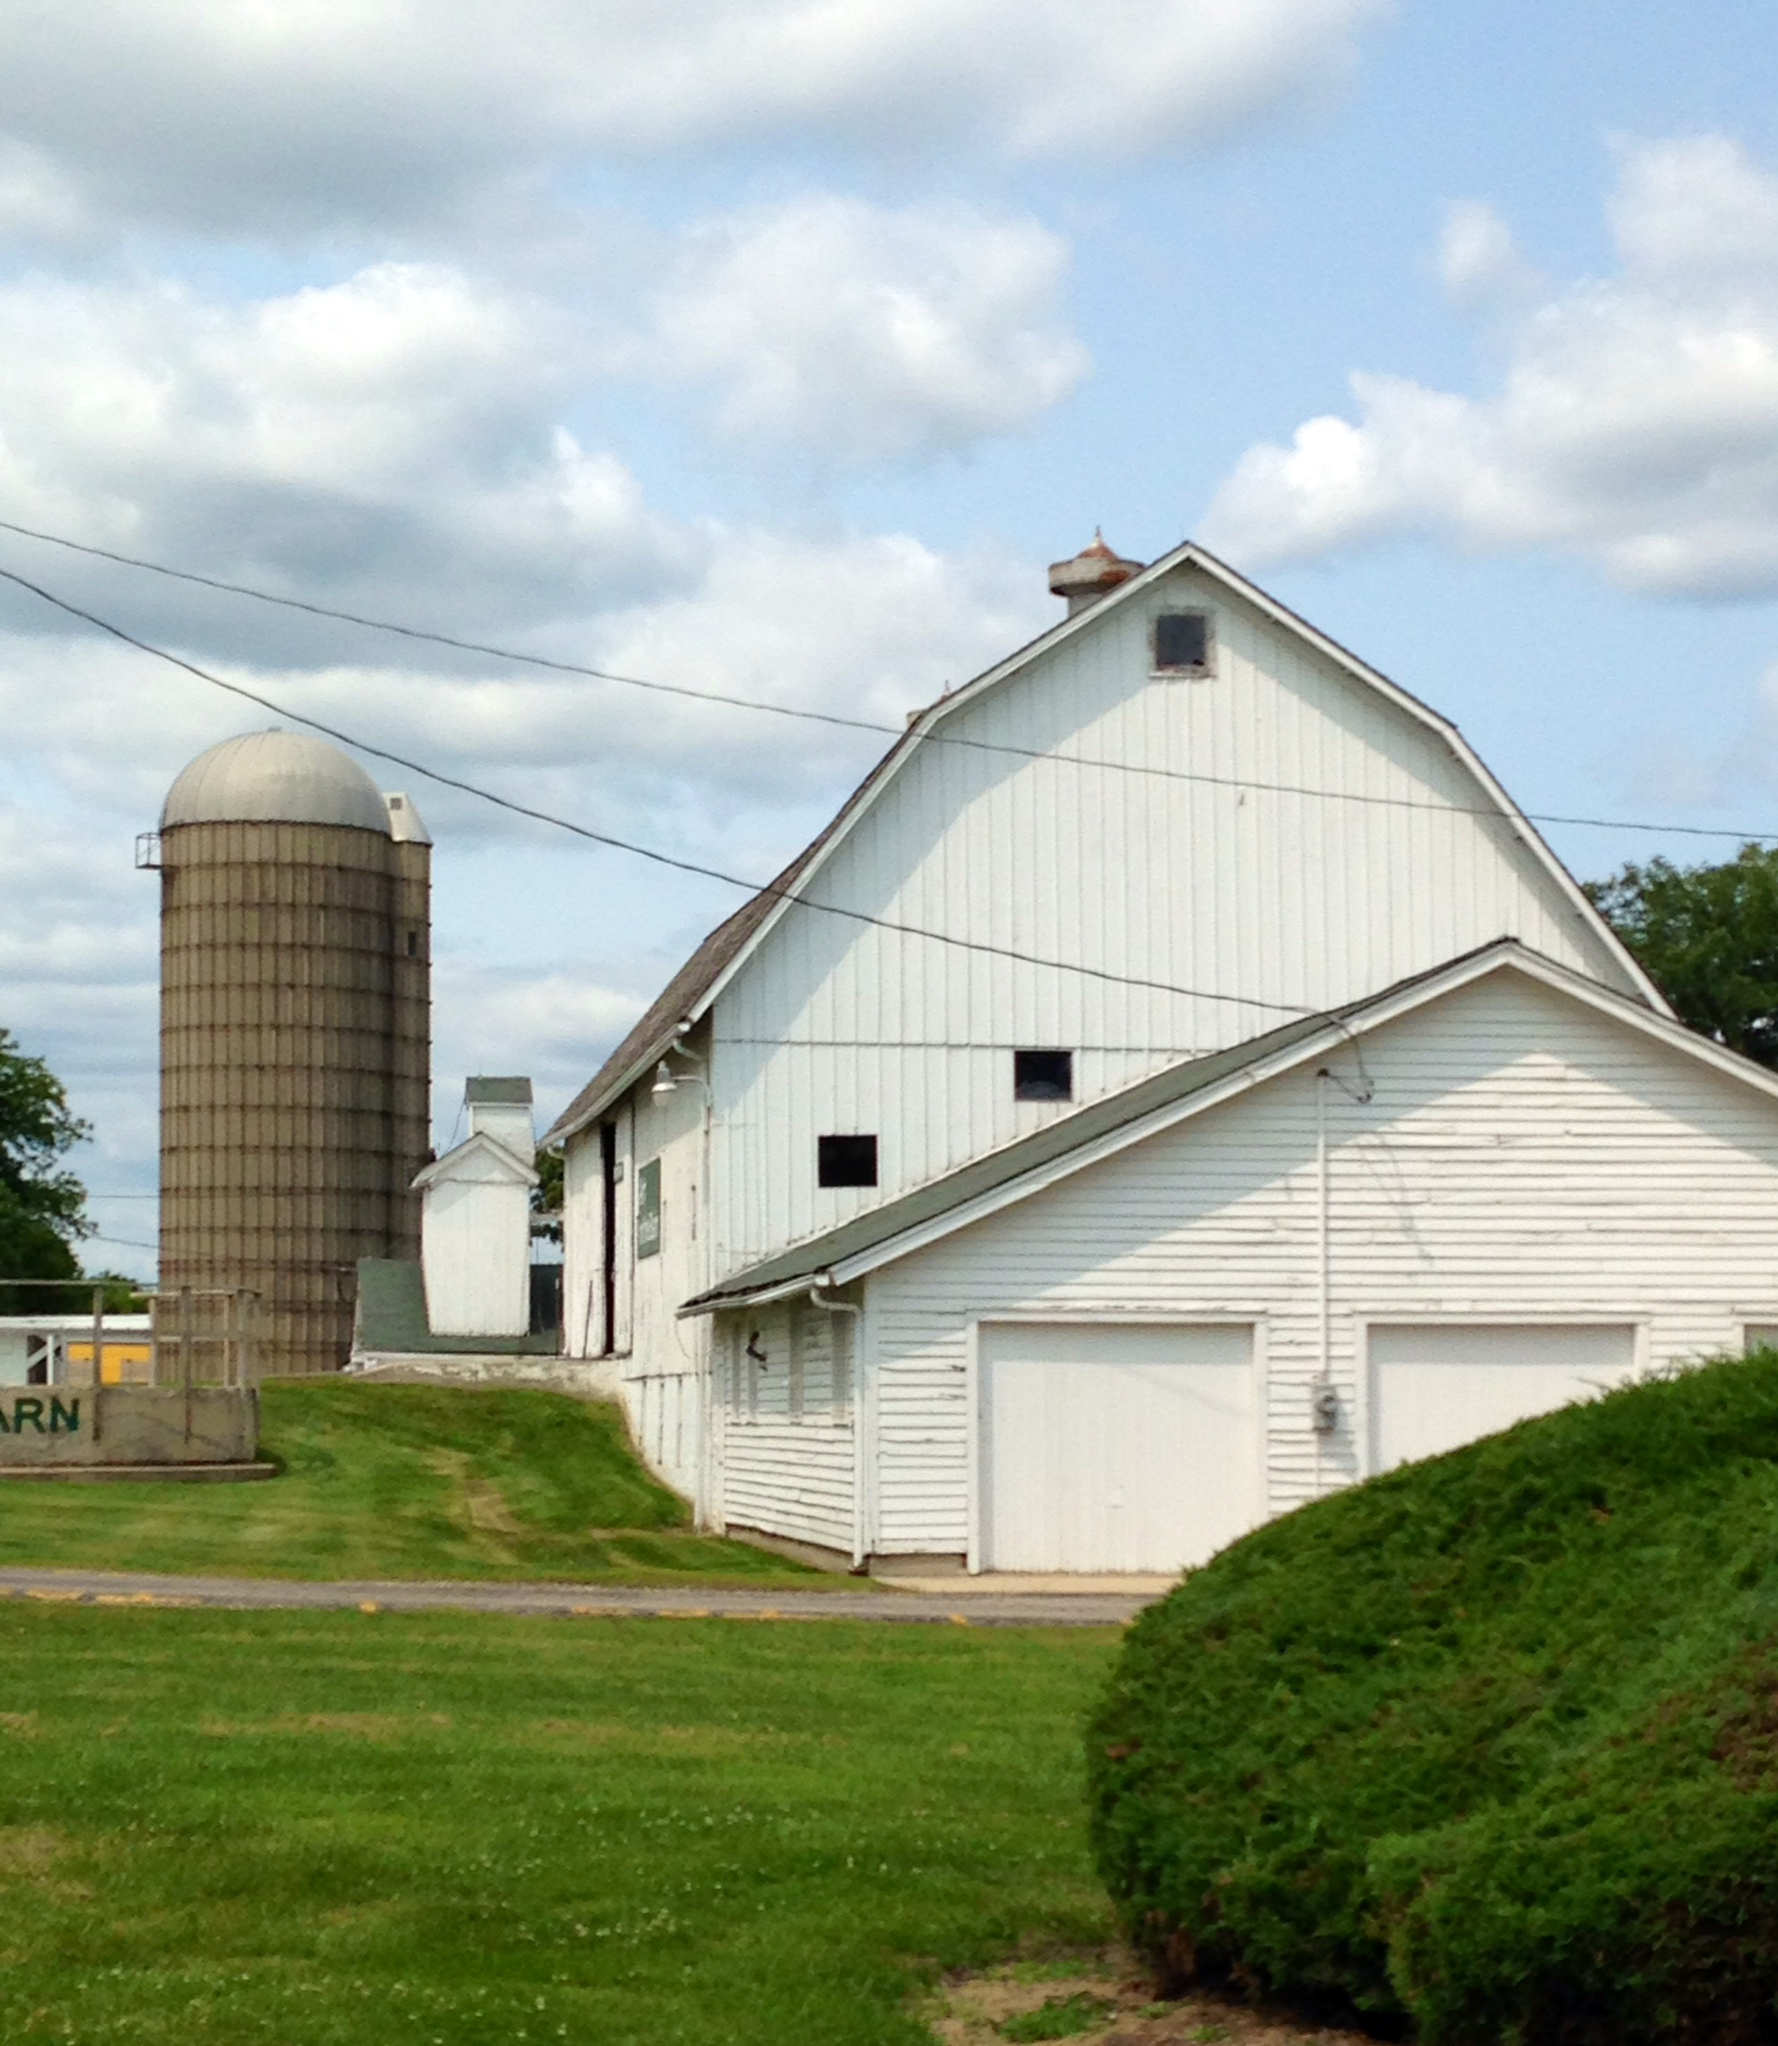 Smart Farm's First Annual Farm to Barn dinner will take place on September 6 in the Good Shepherd Hospital barn.Kathy Tabak